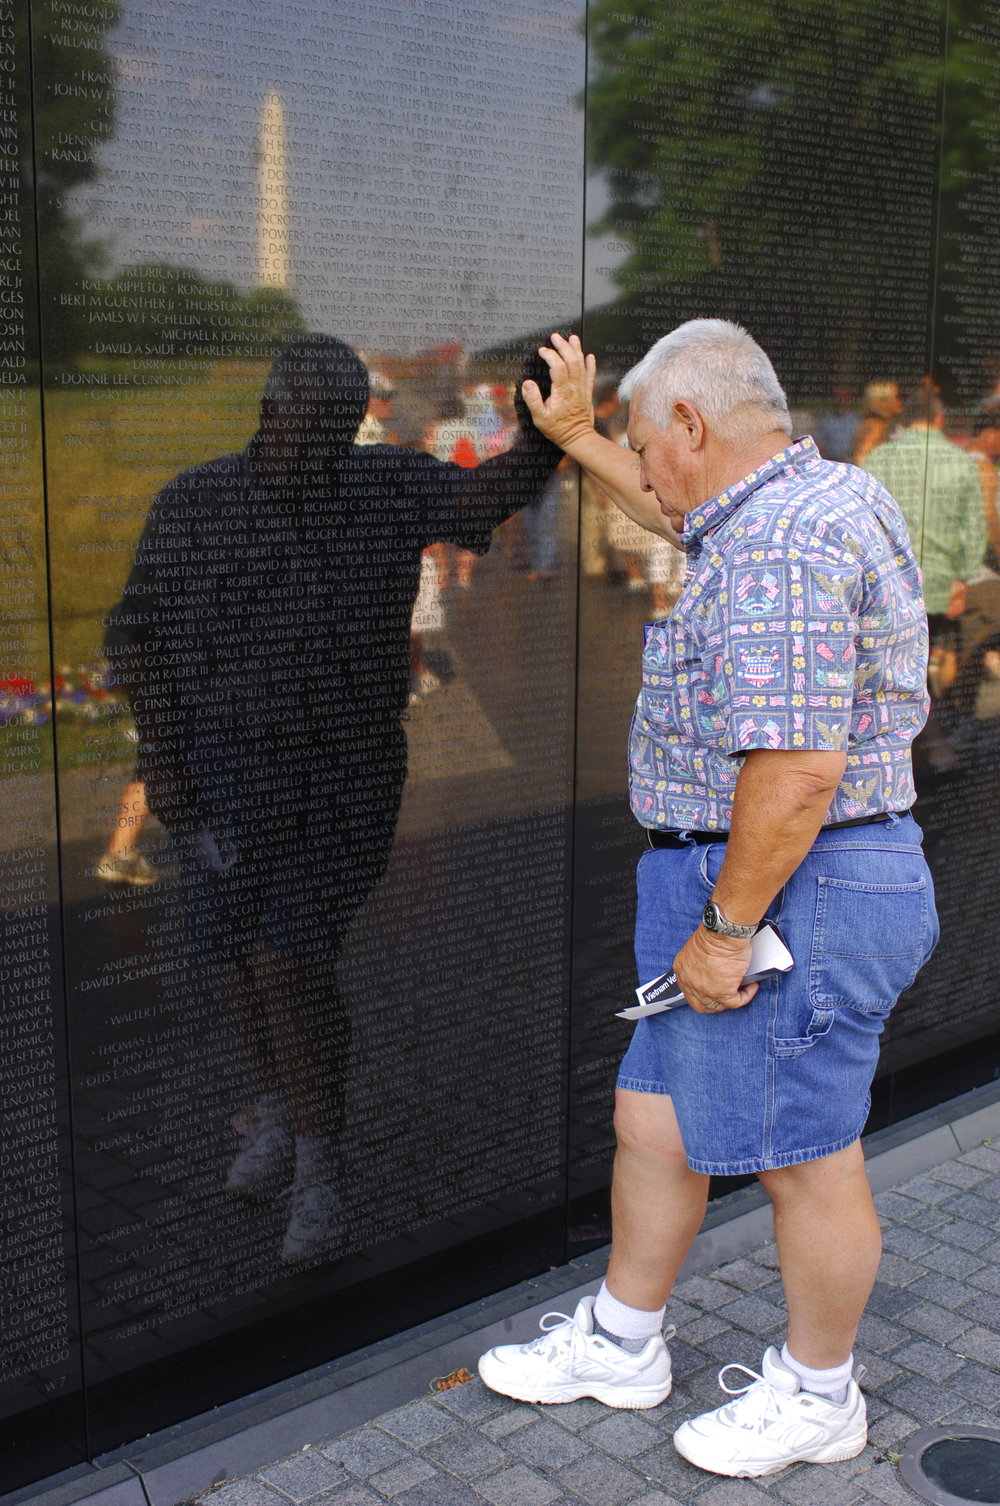 """I took my dad to see The Wall for the first time about 10 years ago and I snapped this photo. This man, my father, fought for this country, and he bears the scars to prove it. When he came home, he continued to give - paid his taxes, worked his ass off - and the Department of Veterans Affairs rewarded him by cutting his benefits. That's how our government """"supports the troops."""""""